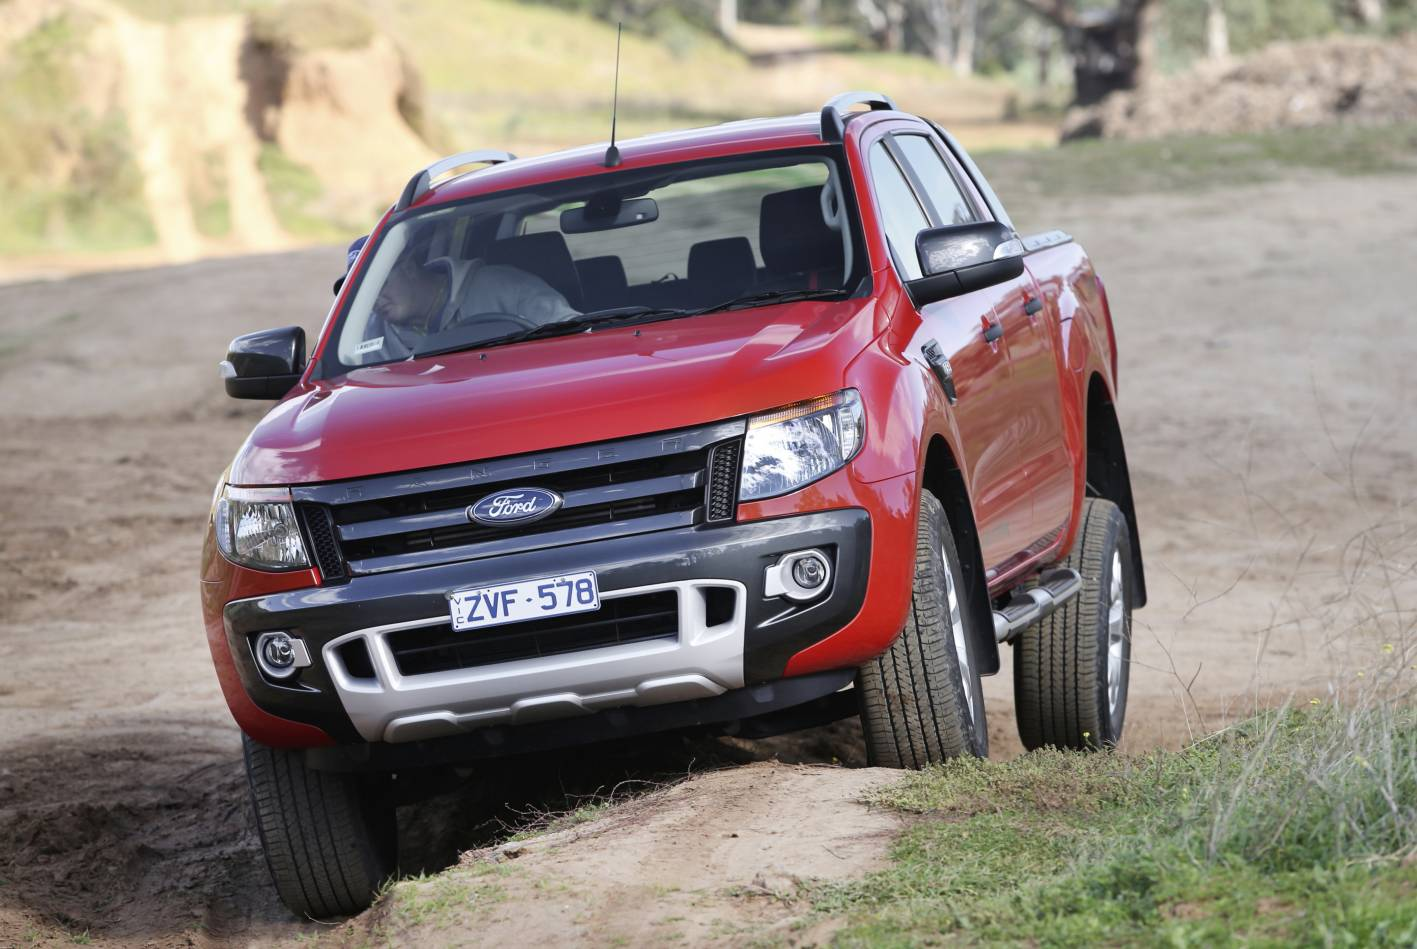 Ranger shares fundamentals with Mazda BT-50 - but rocks with superior styling